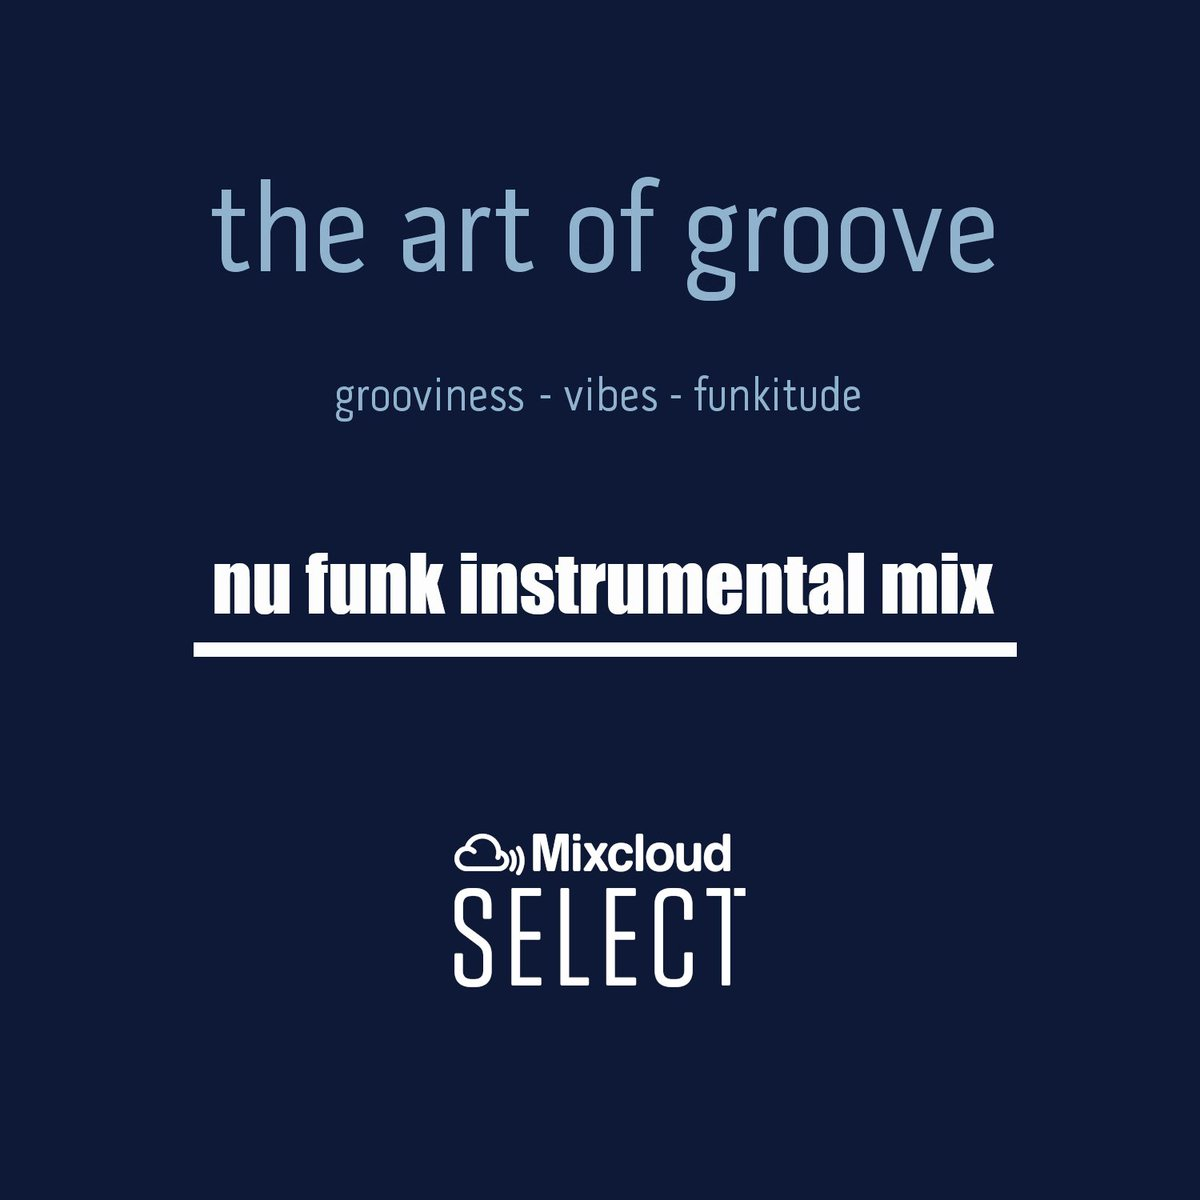 Countdown! Only 2 more days available! When it's gone, it's gone! https://www.mixcloud.com/chaaser/nu-funk-instrumental/ … #GetCloser #mixcloudselect #mixcloud #nufunk #deepfunk #heavyfunk #hammondfunk #groovy #funky #funkymusic #djset #dj #djmix #djmixes